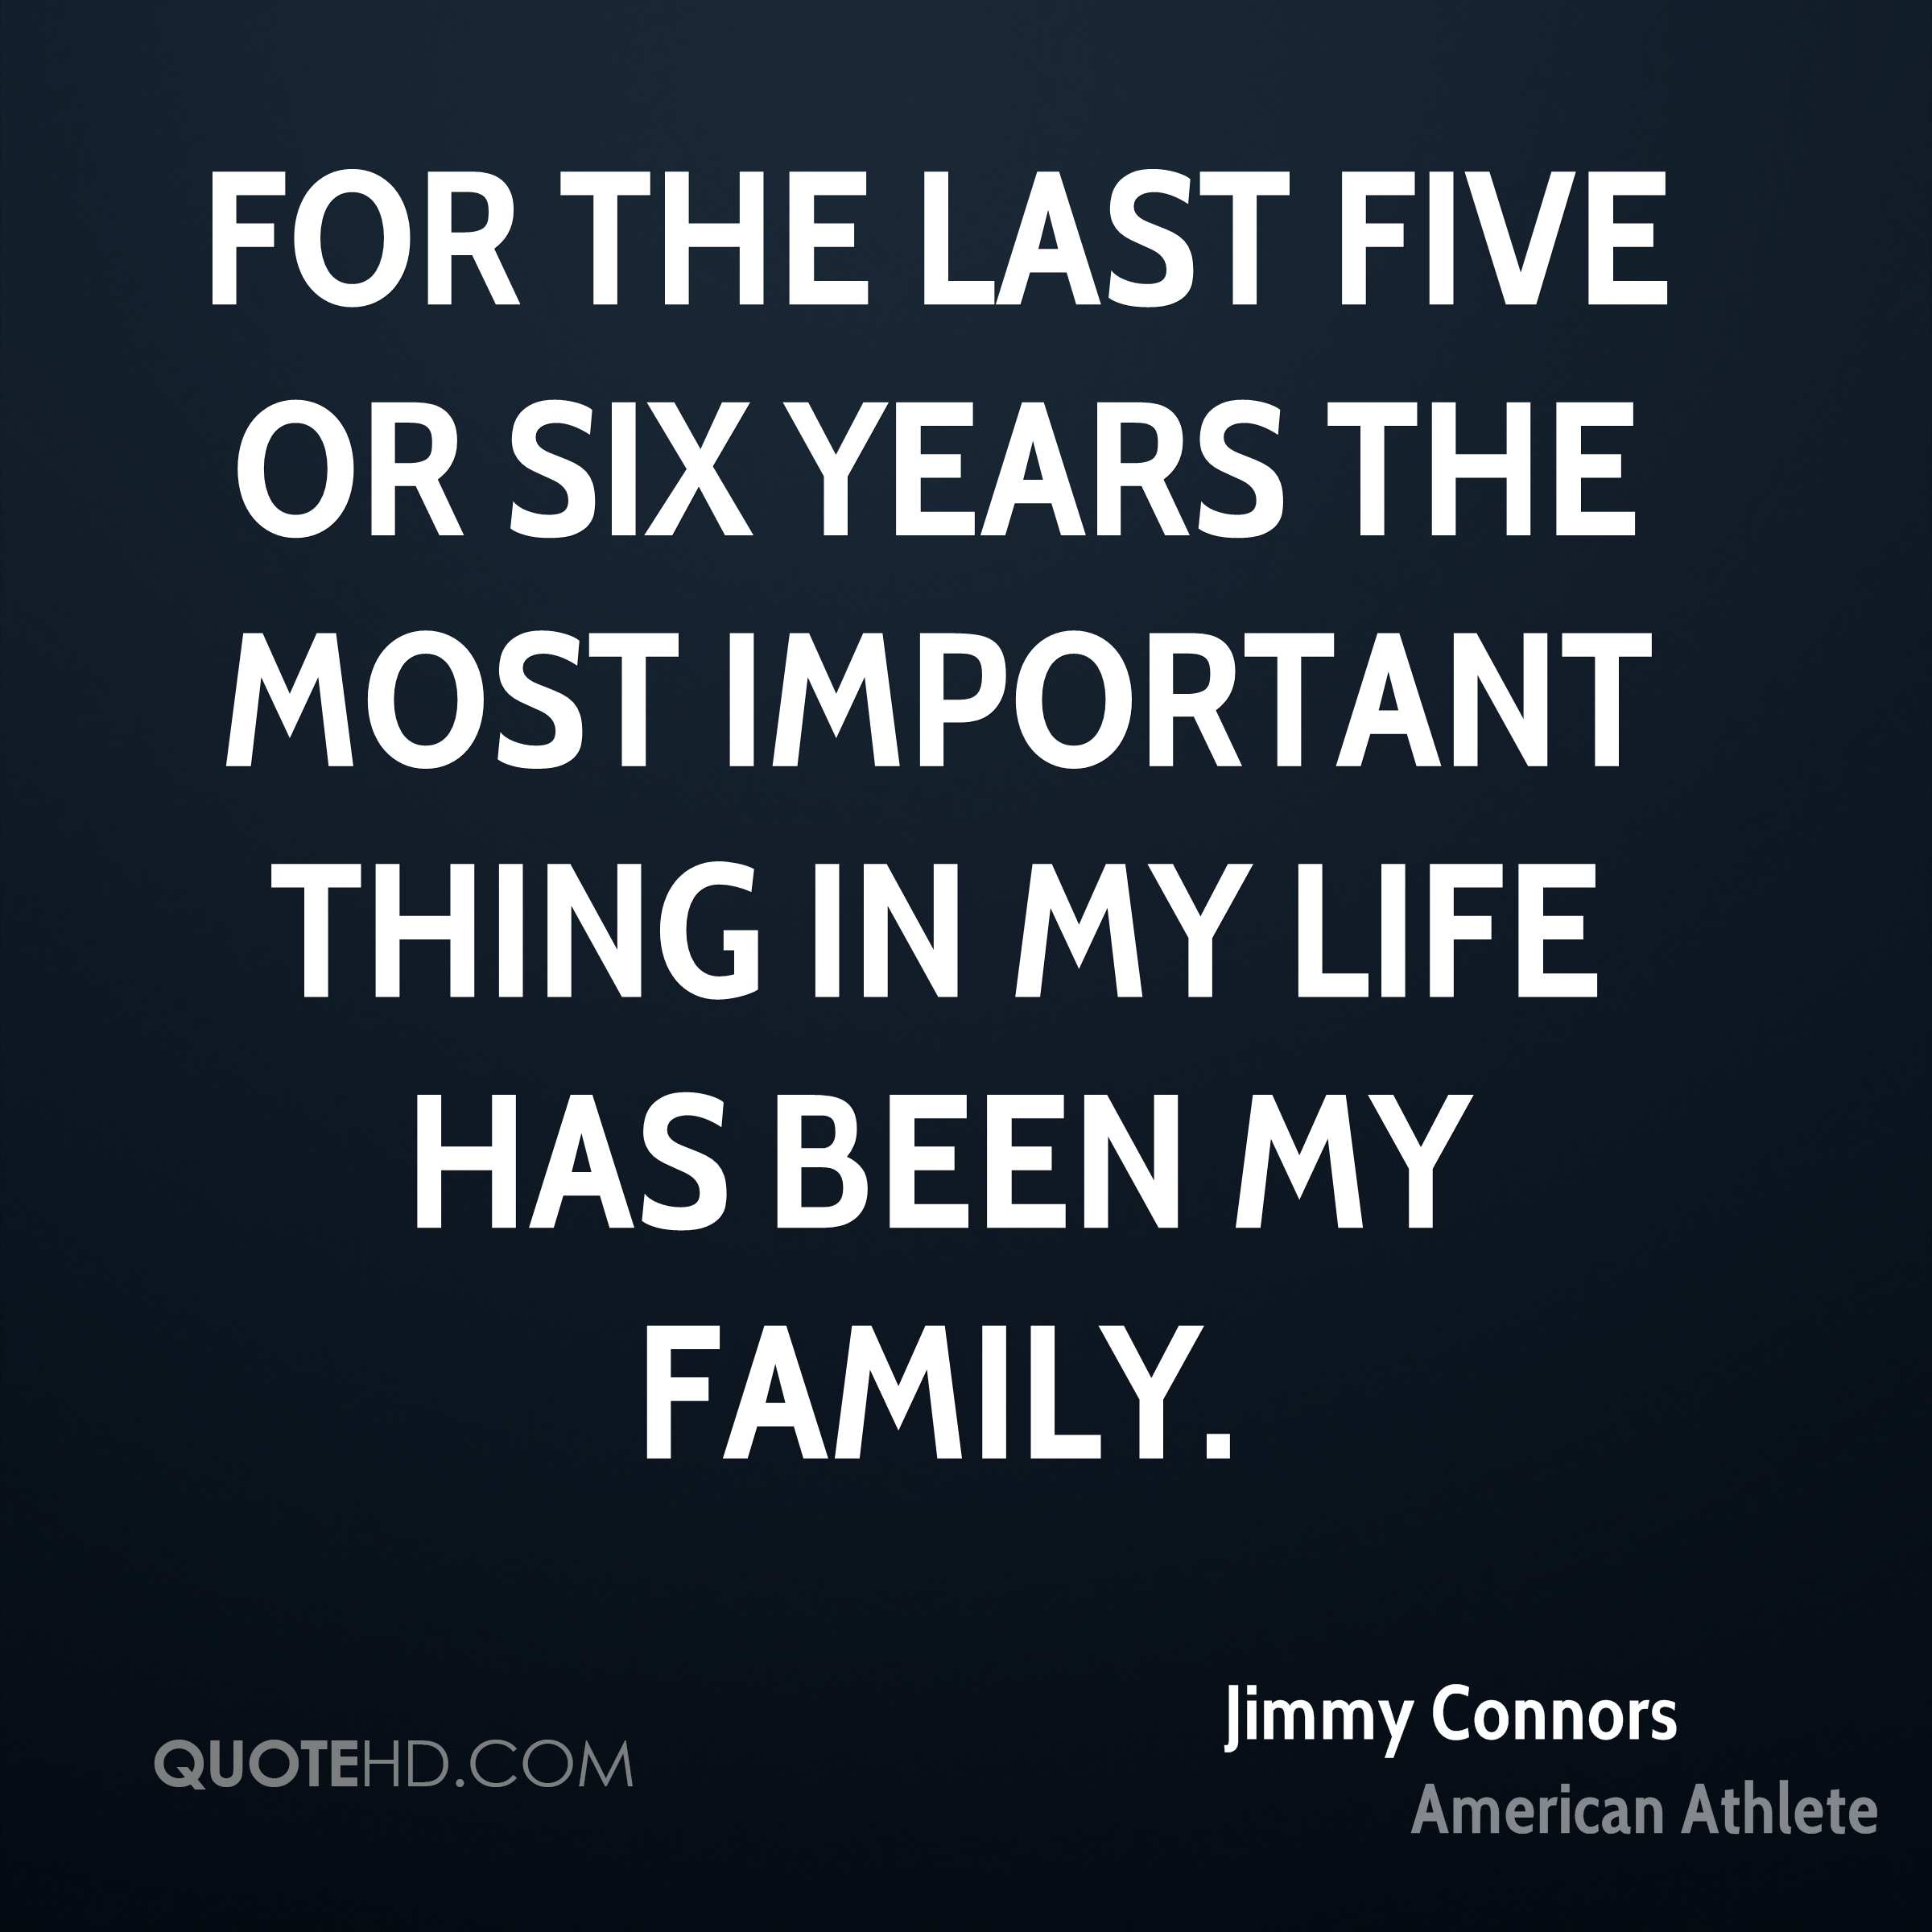 For the last five or six years the most important thing in my life has been my family.